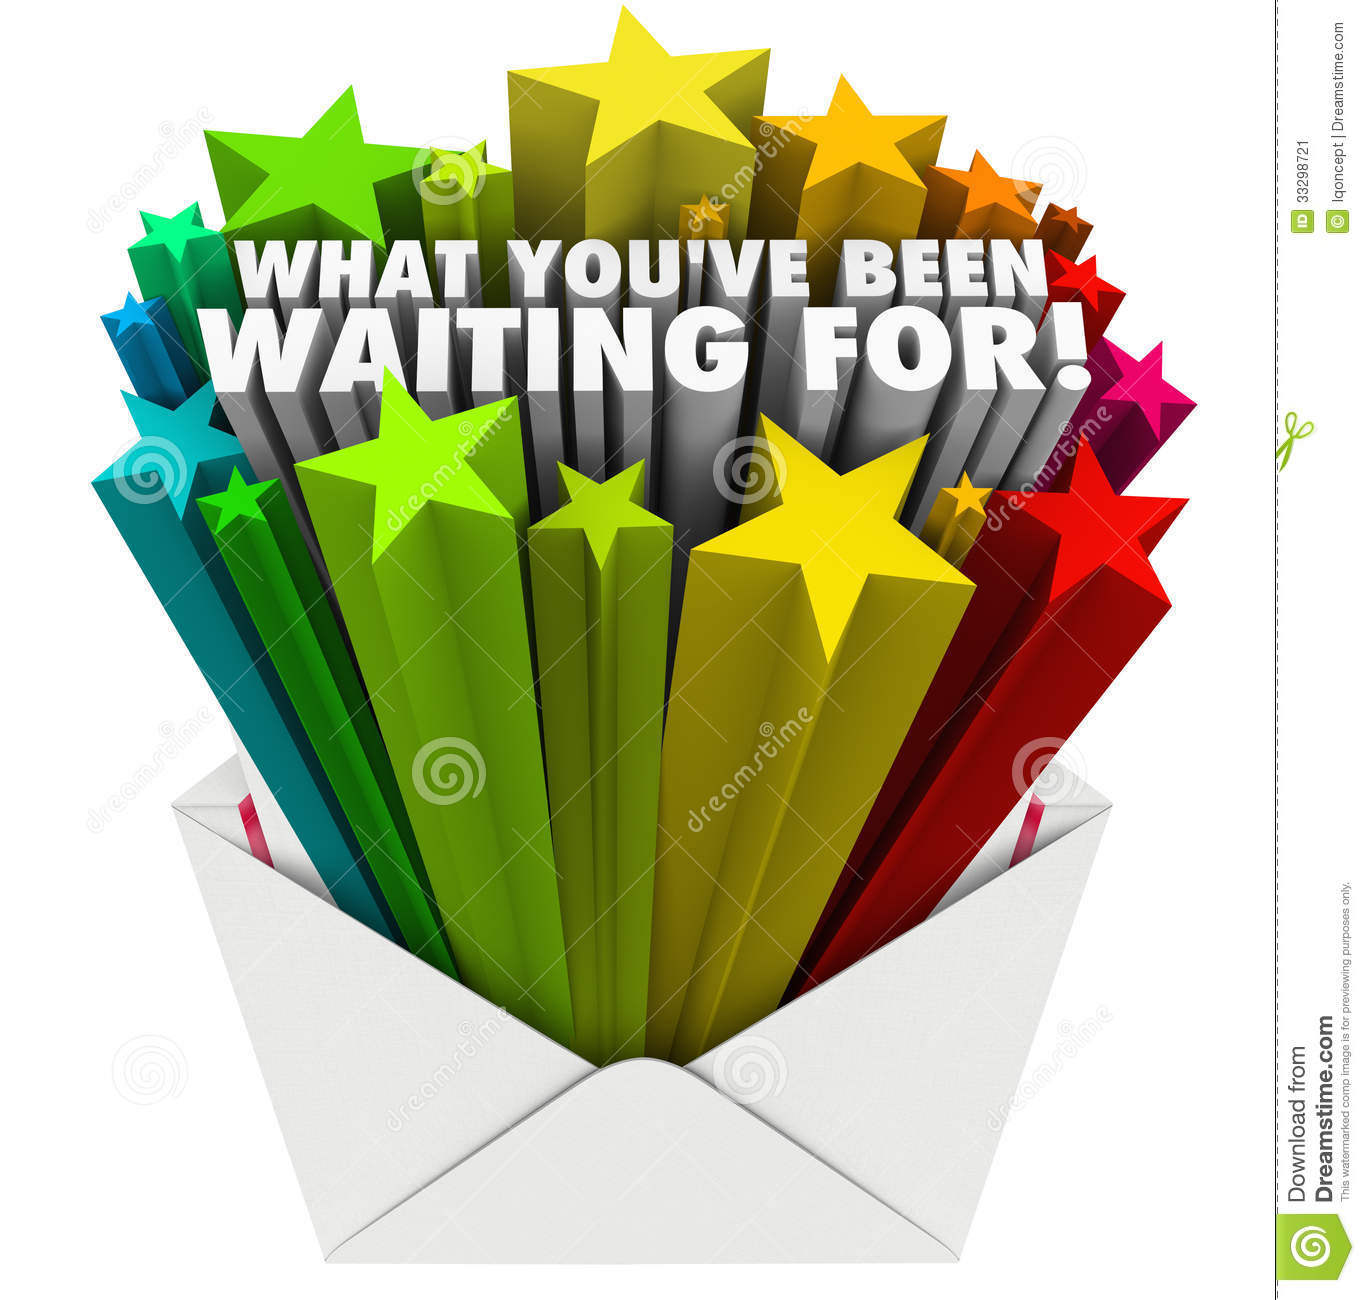 What You've Been Waiting For Envelope Stars Words Stock Image - Image ...